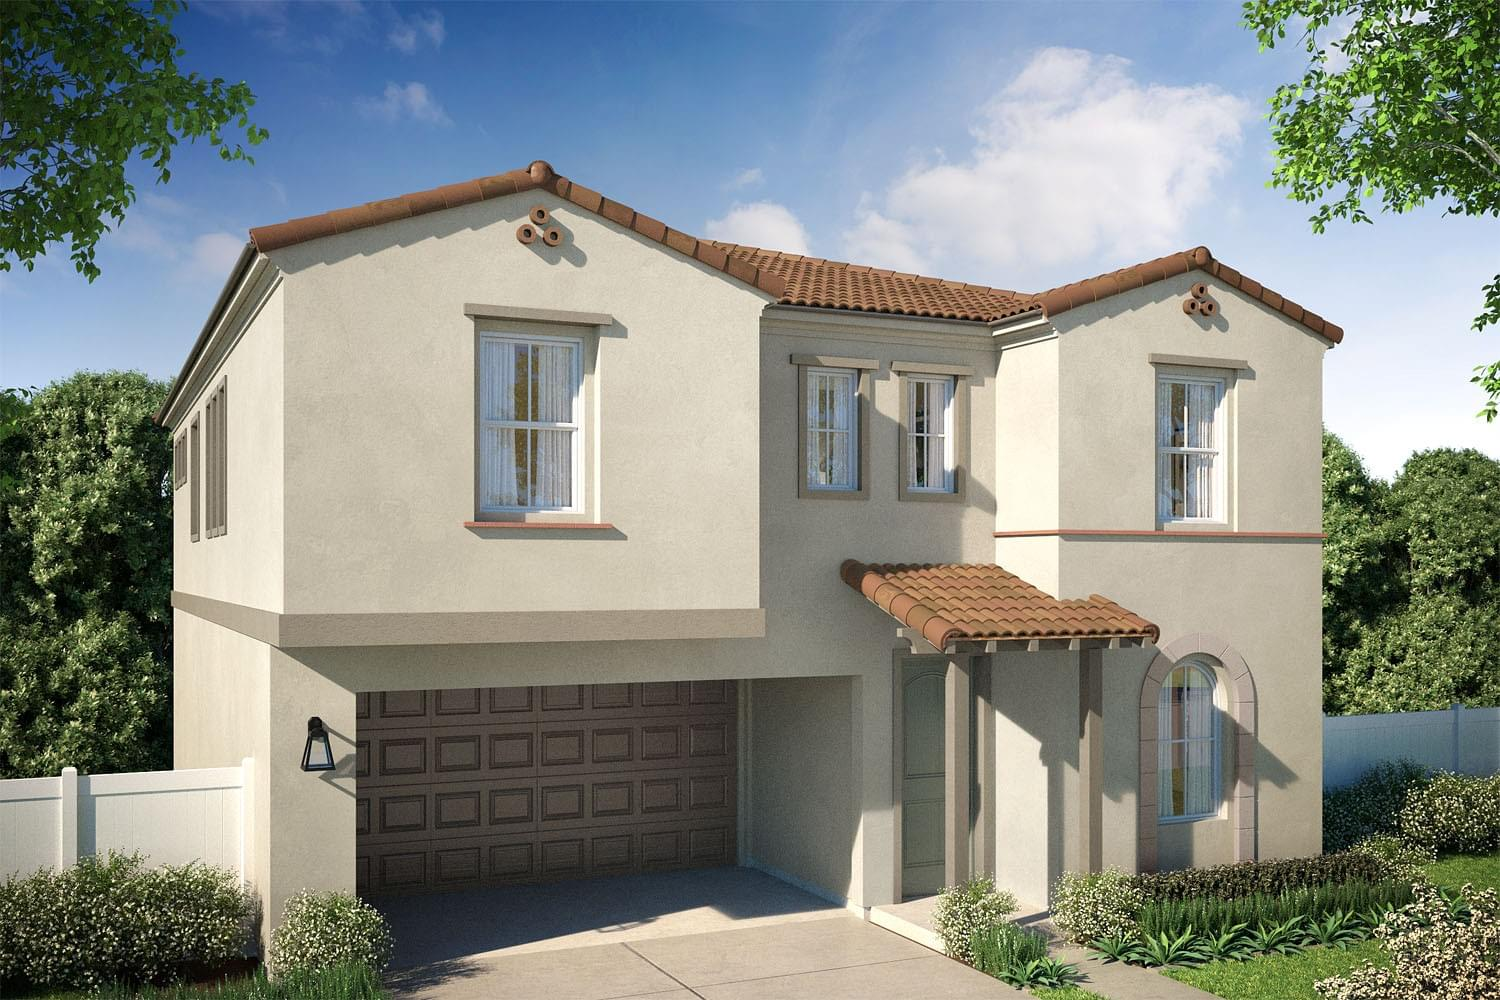 2632 Lucent Lane in Costa Mesa , CA by DeNova Homes